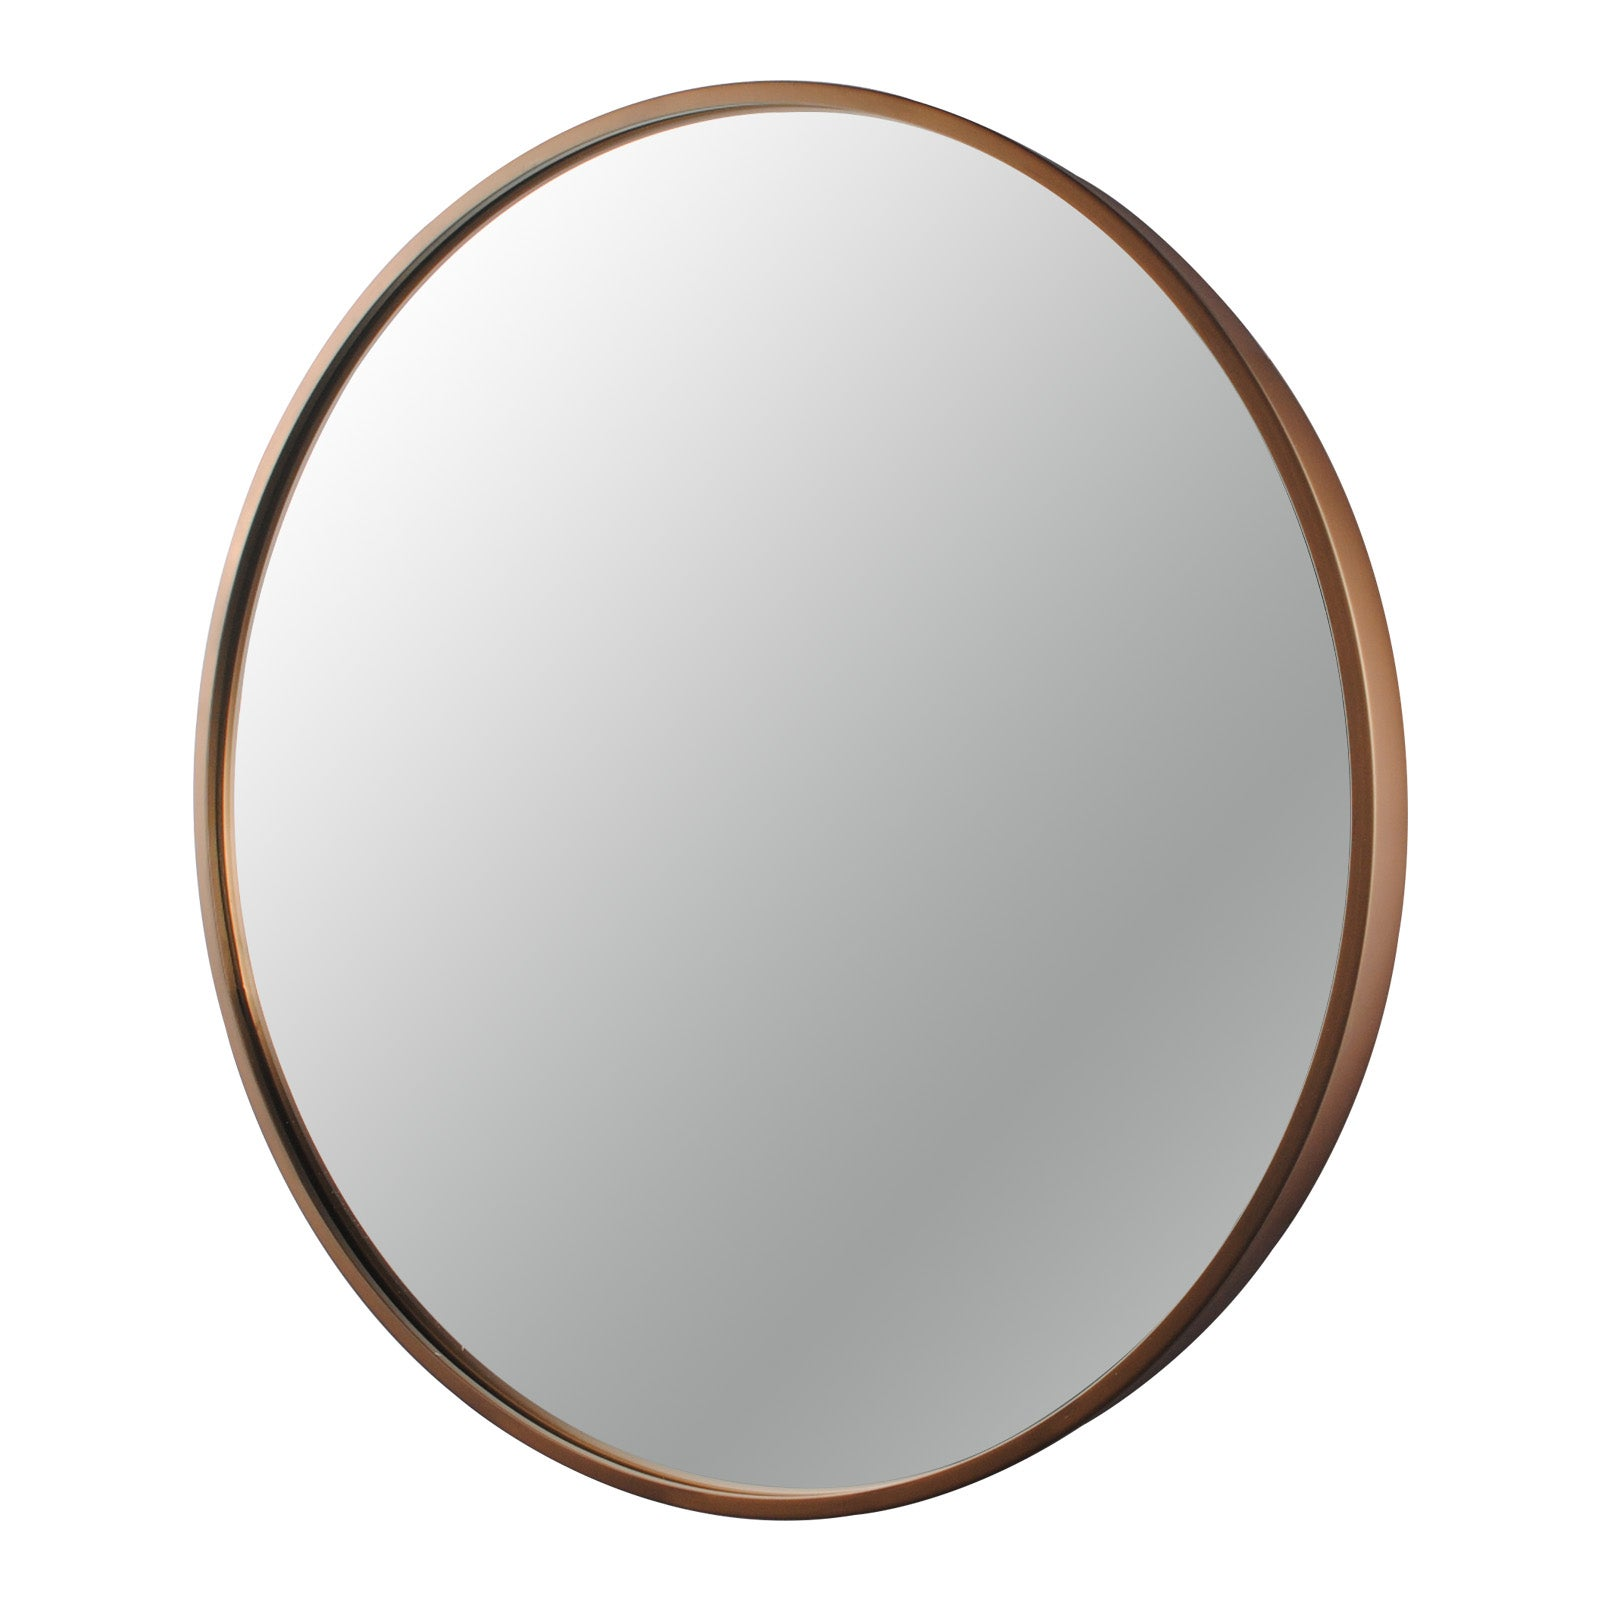 800x800x40mm Bathroom Mirror Rose Gold Stainless Steel Framed Round Wall Mirror with Brackets